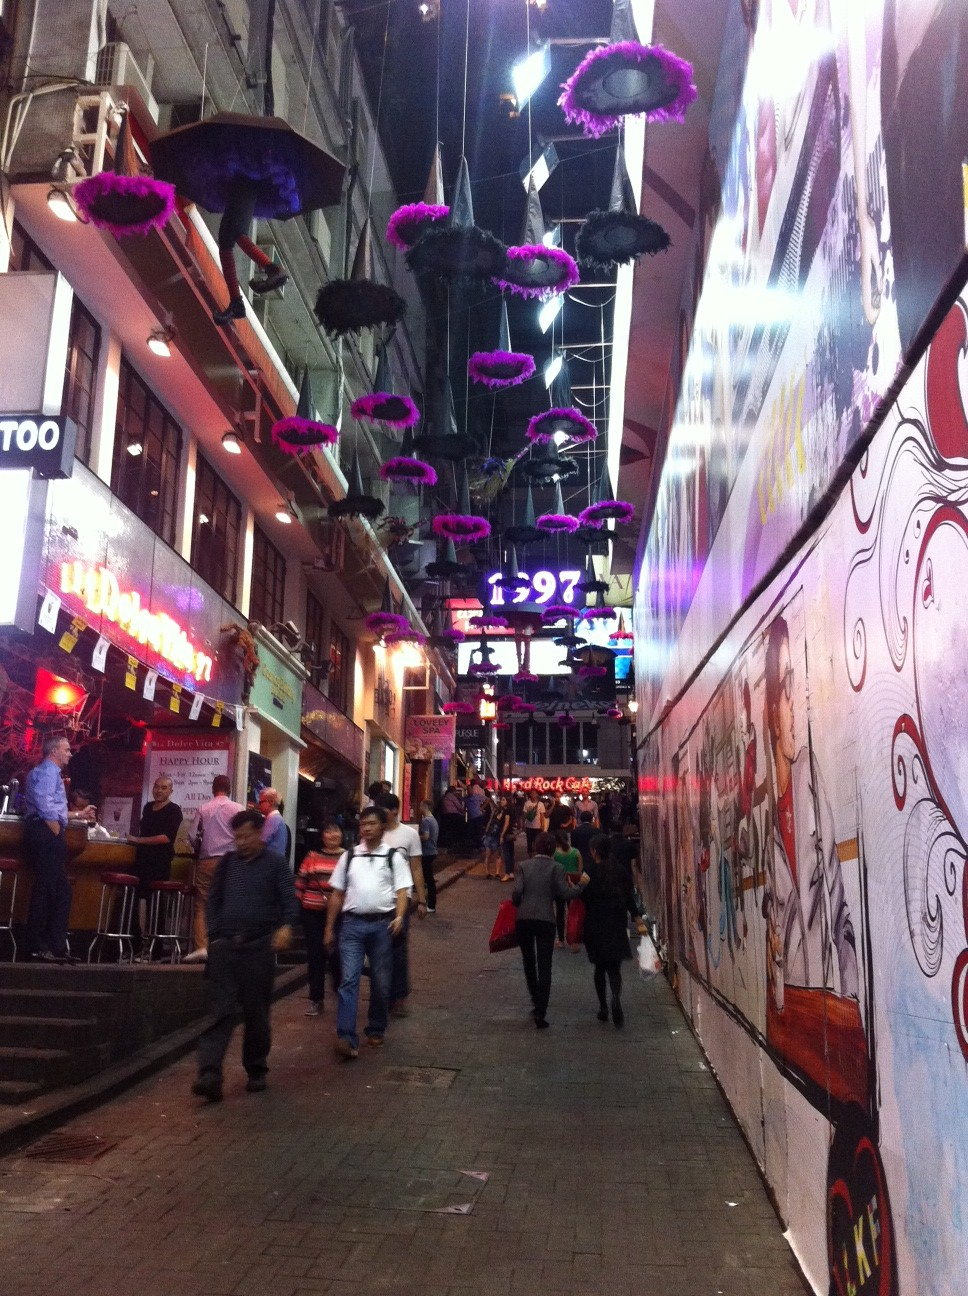 Boo!  This is Lan Kwai Fong, the famous bar area in Central, Hong Kong